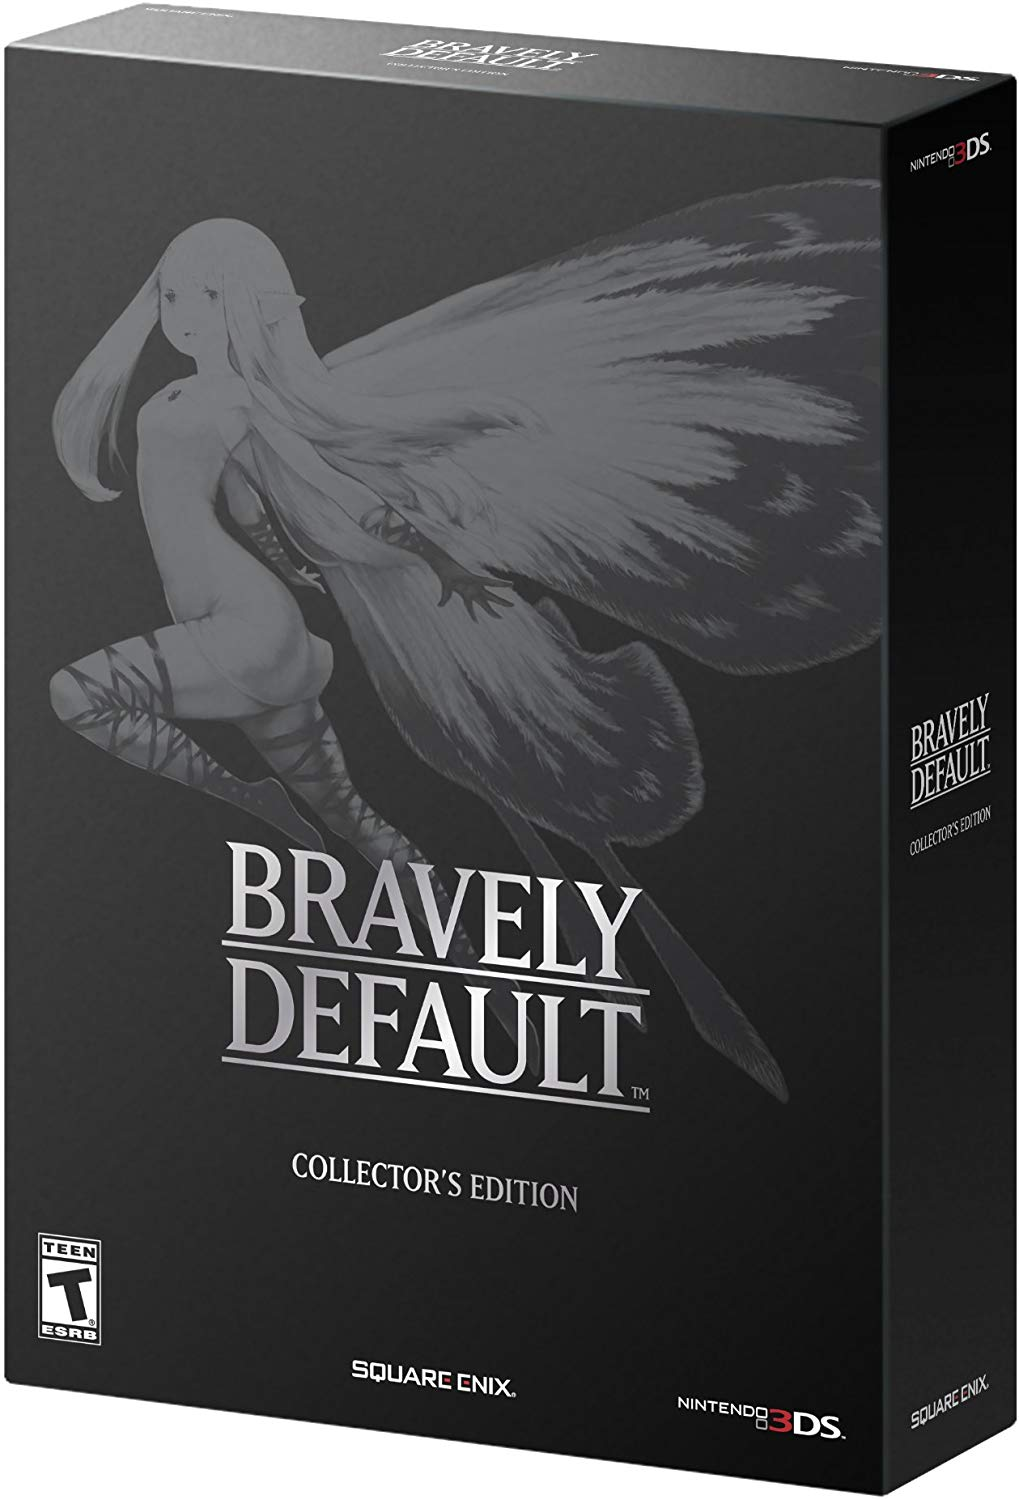 bravely-default-collector-s-edition